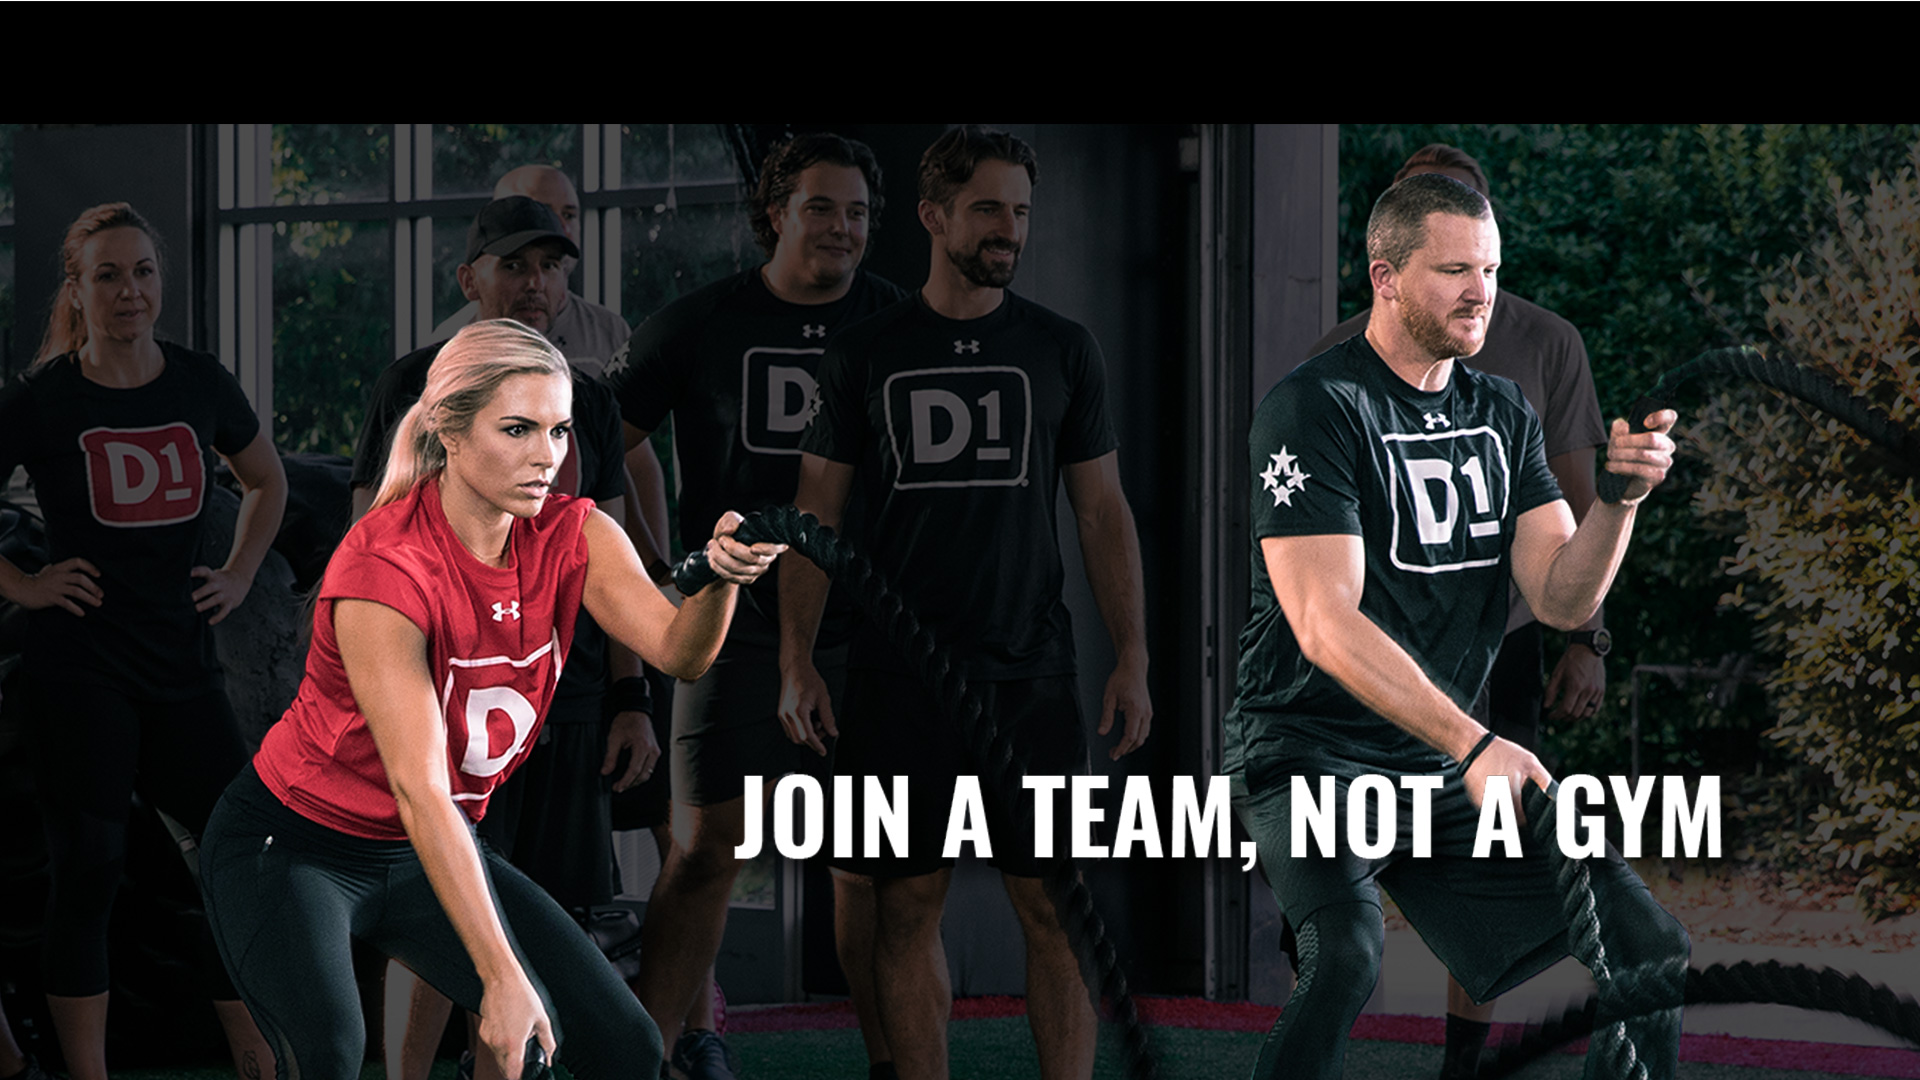 Join a Team, Not a Gym